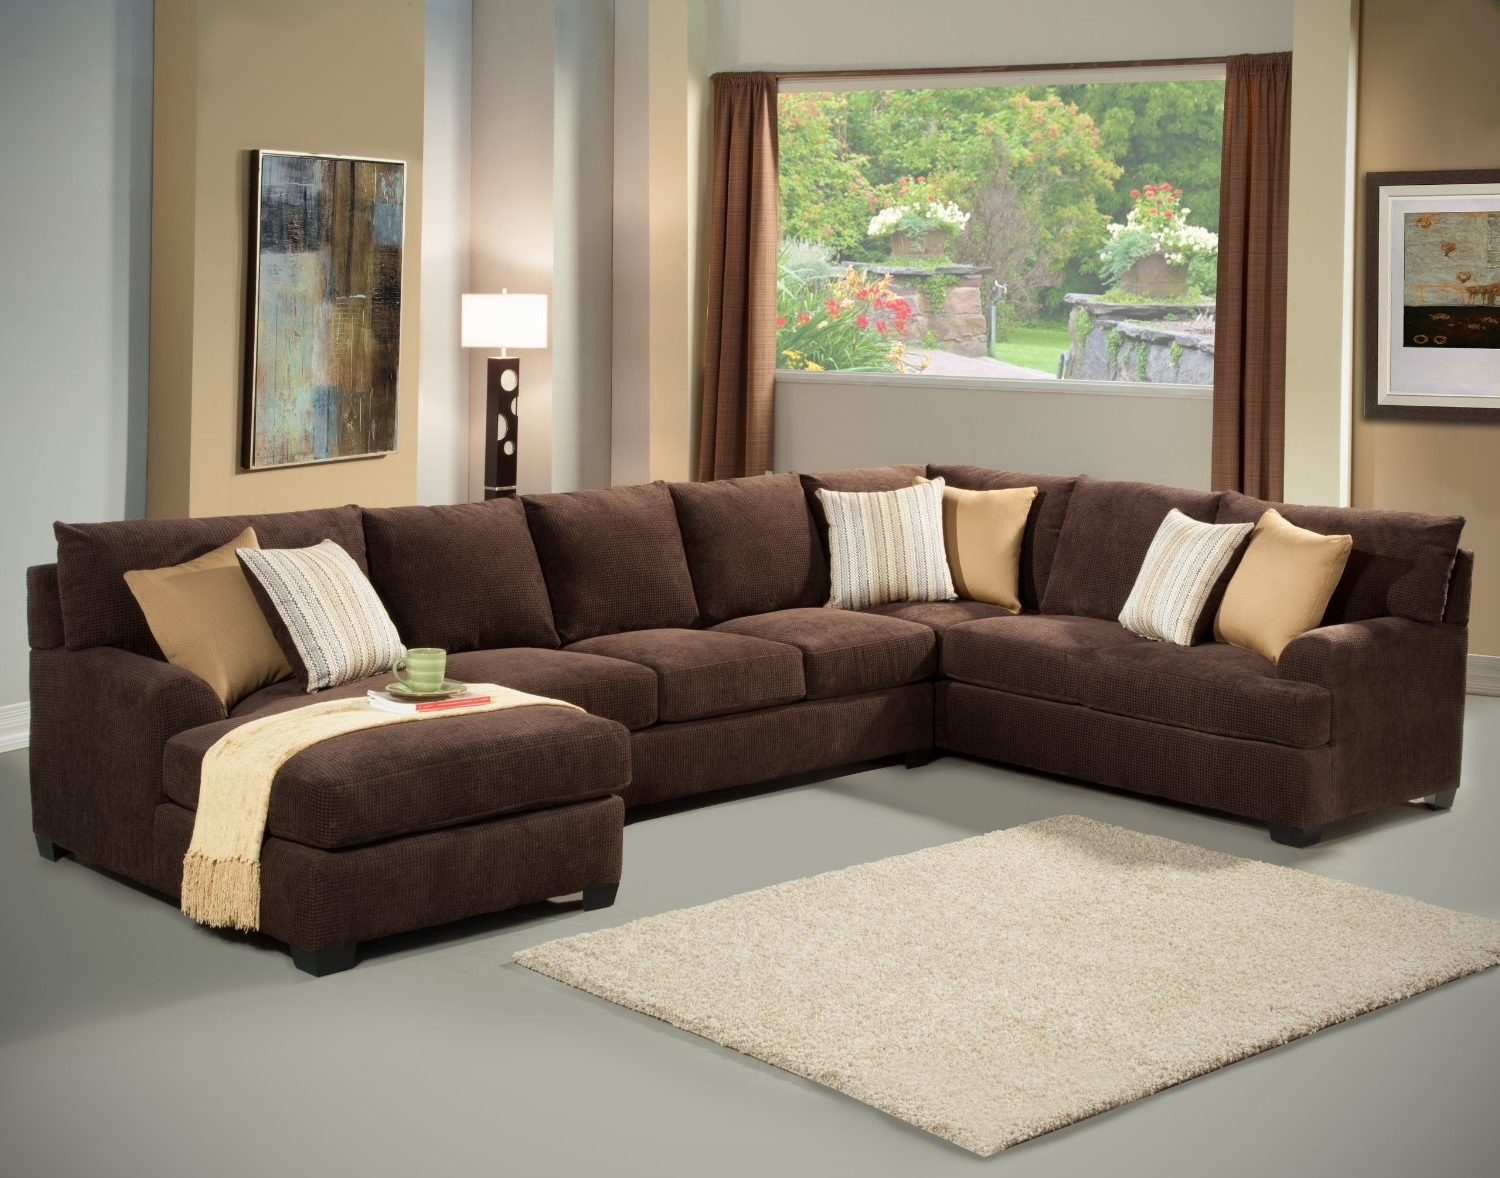 Microfiber Chaise Lounges Within Popular Sofa : Modern Sectional Couch With Chaise Lounge Tufted Couch Set (View 10 of 15)